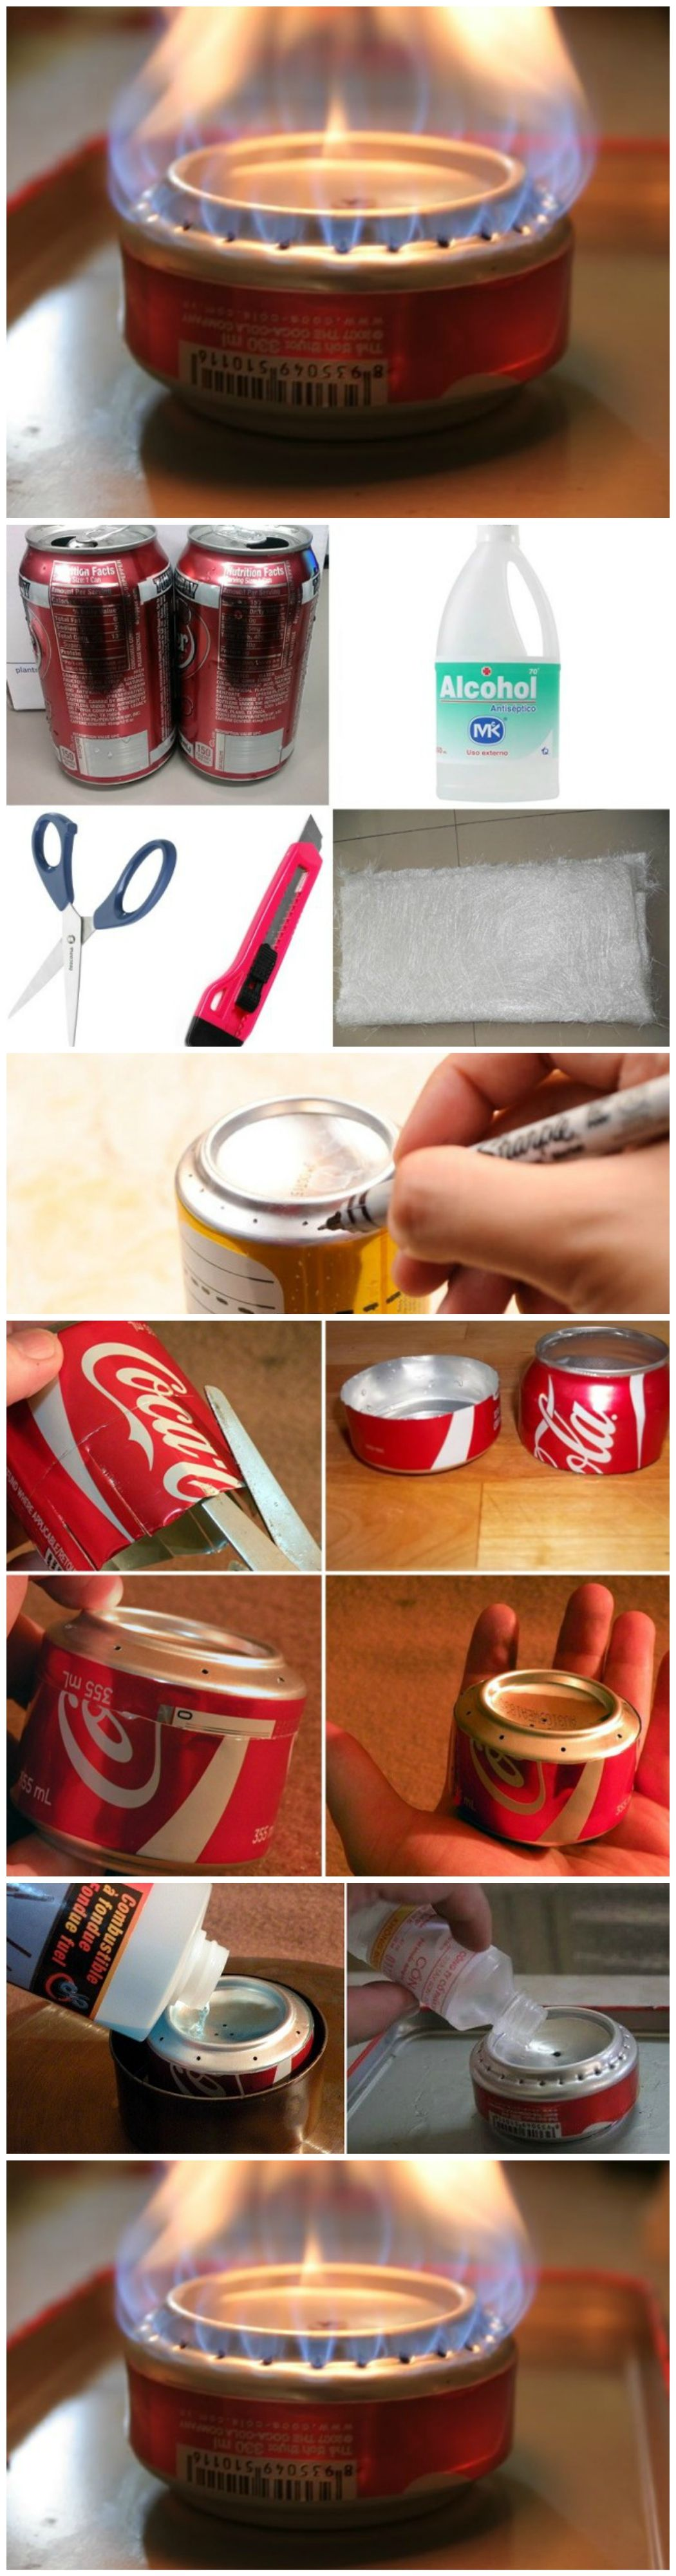 How To Build A Coke Can Stove For Hiking And Camping